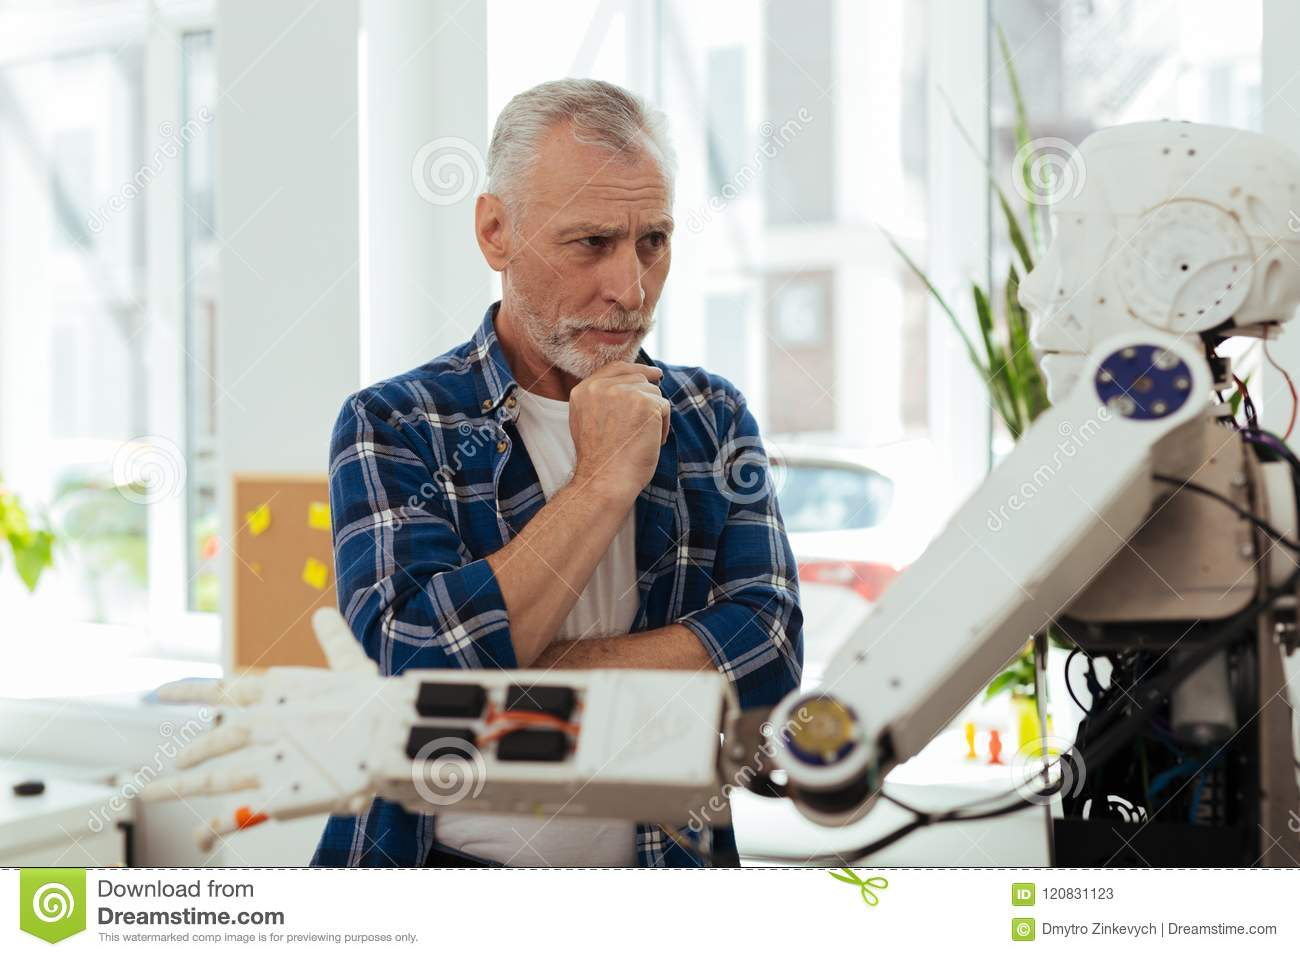 Serious thoughtful man looking for new ideas